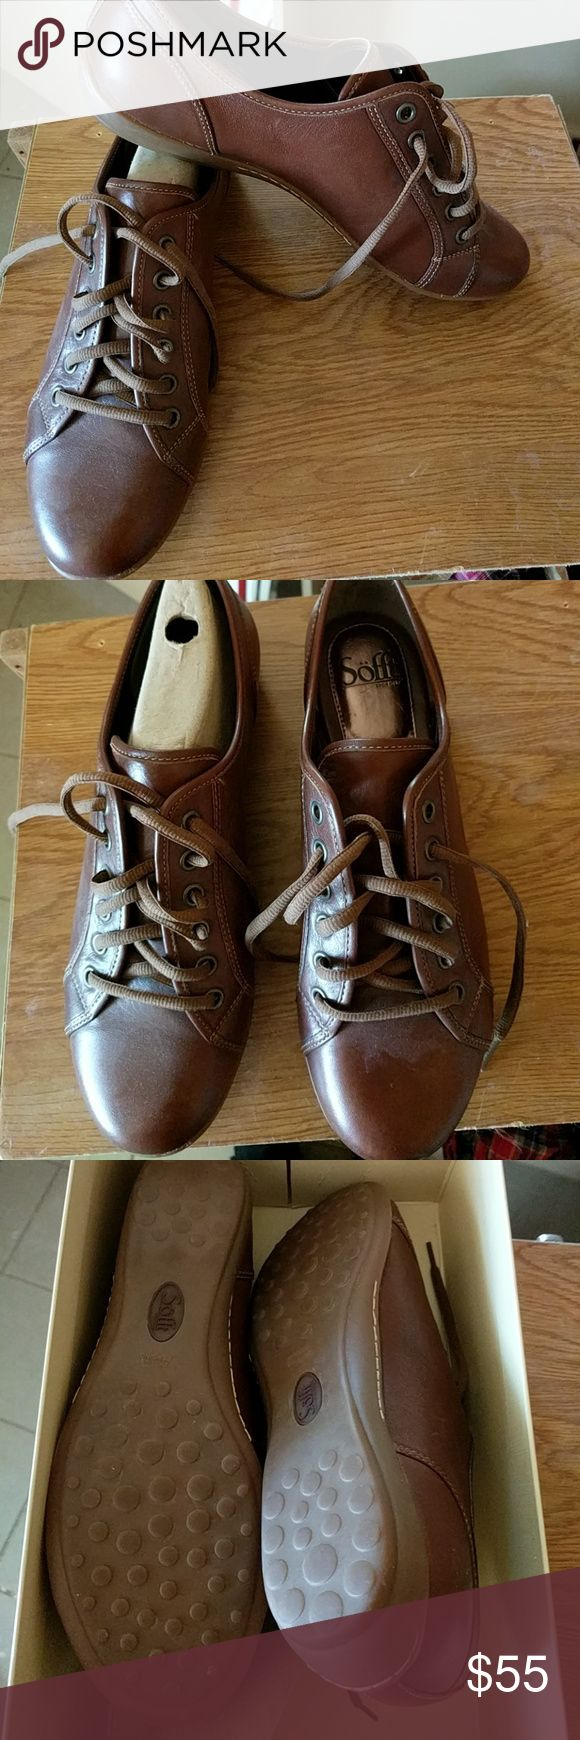 Portland cuero tan sofft shoes size 10 M New tan tie up shoes Shoes Sneakers